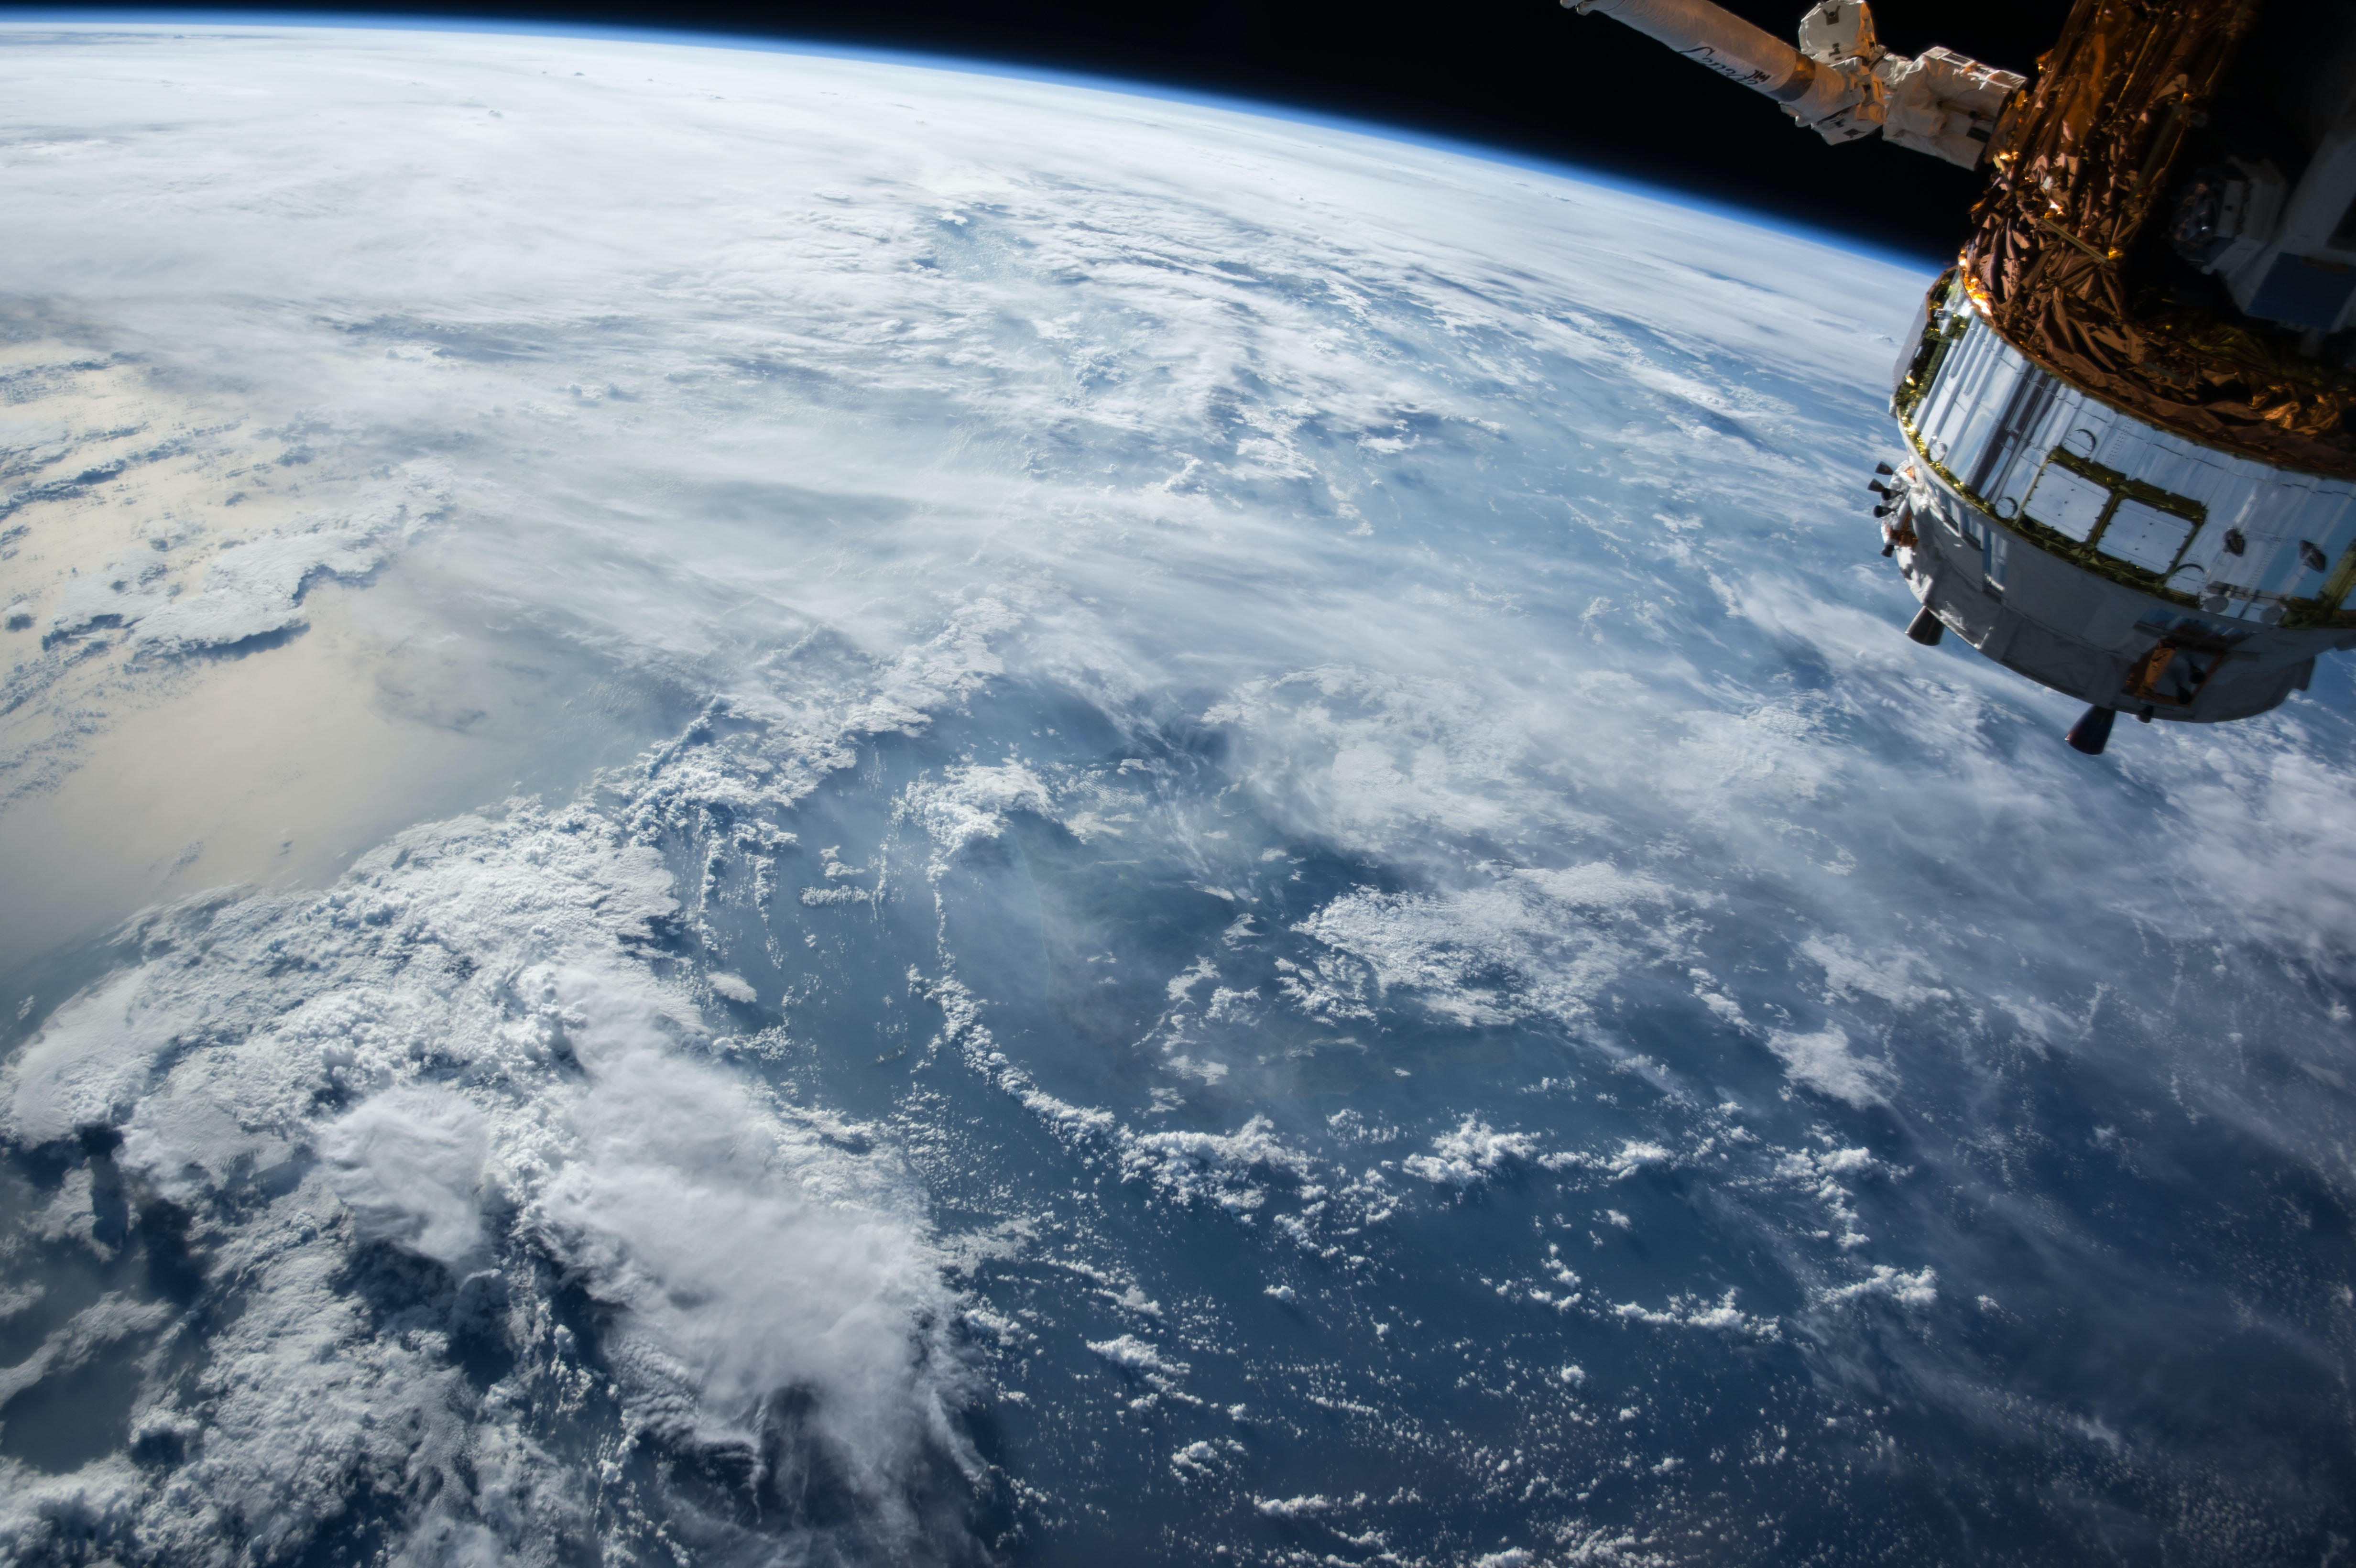 A view from the orbit on an artificial satellite over white clouds on the ocean